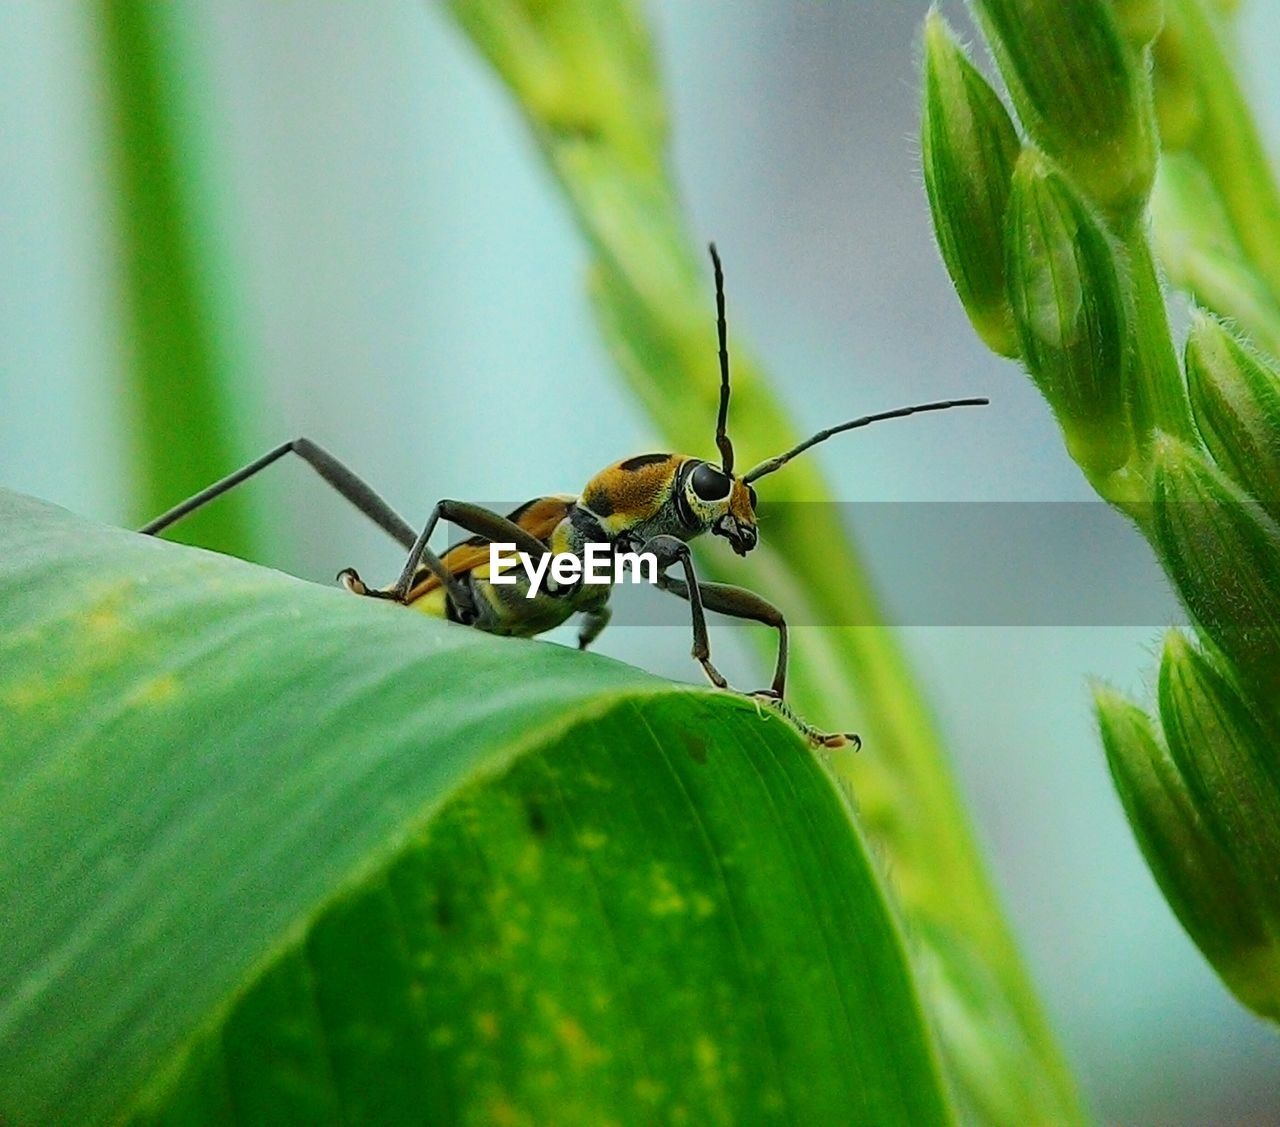 plant part, leaf, invertebrate, insect, animal themes, animal, animals in the wild, animal wildlife, one animal, green color, close-up, selective focus, plant, nature, no people, growth, day, animal antenna, animal body part, zoology, outdoors